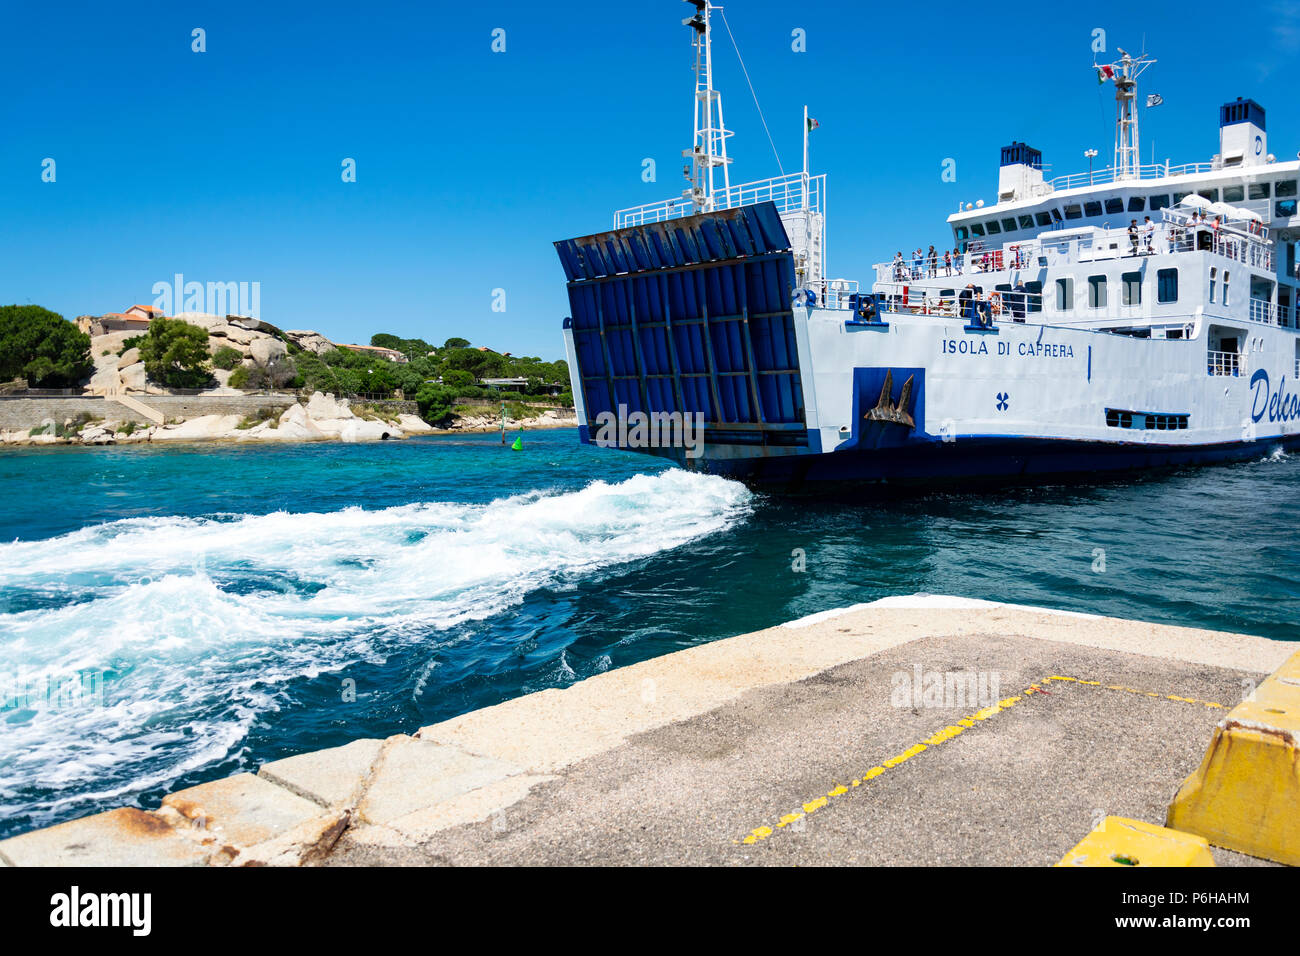 Sardinia, Italy, 06-09-2018: Summer landscape with the ferry boat colored in white and blue travelling from palau, sardinia to La Maddalena Archipel. Stock Photo